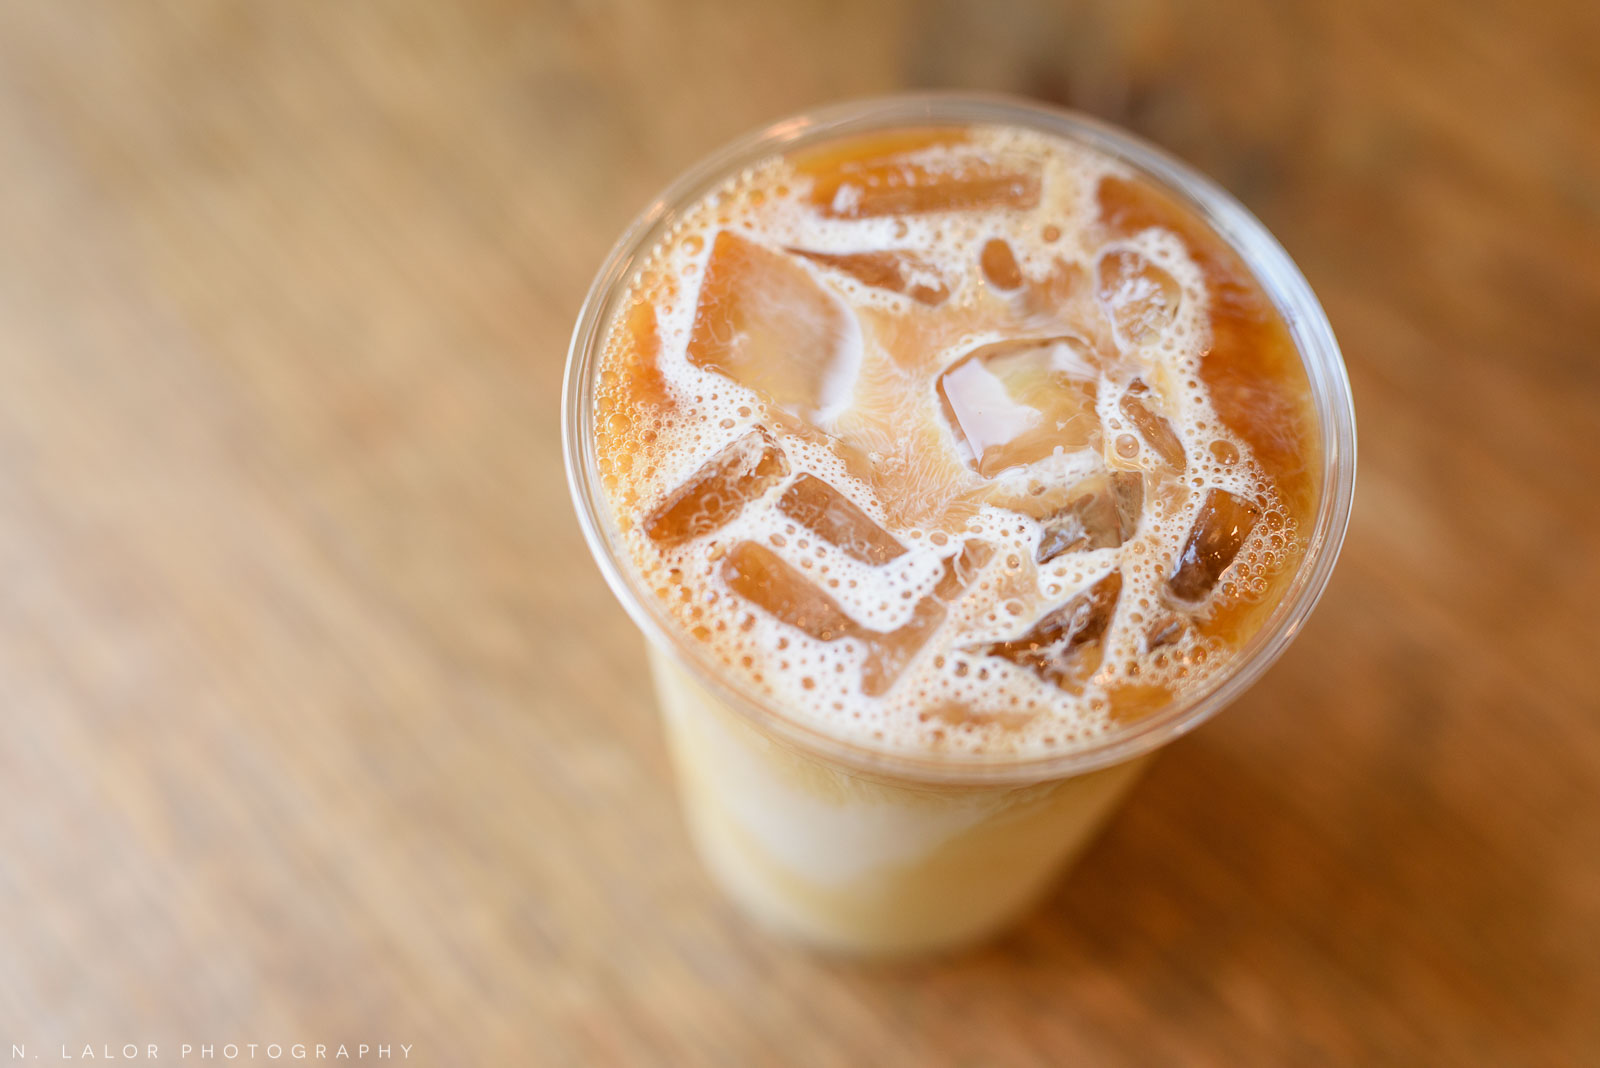 Ice coffee. Ada's Kitchen + Coffee in Riverside, Connecticut. Image by N. Lalor Photography.